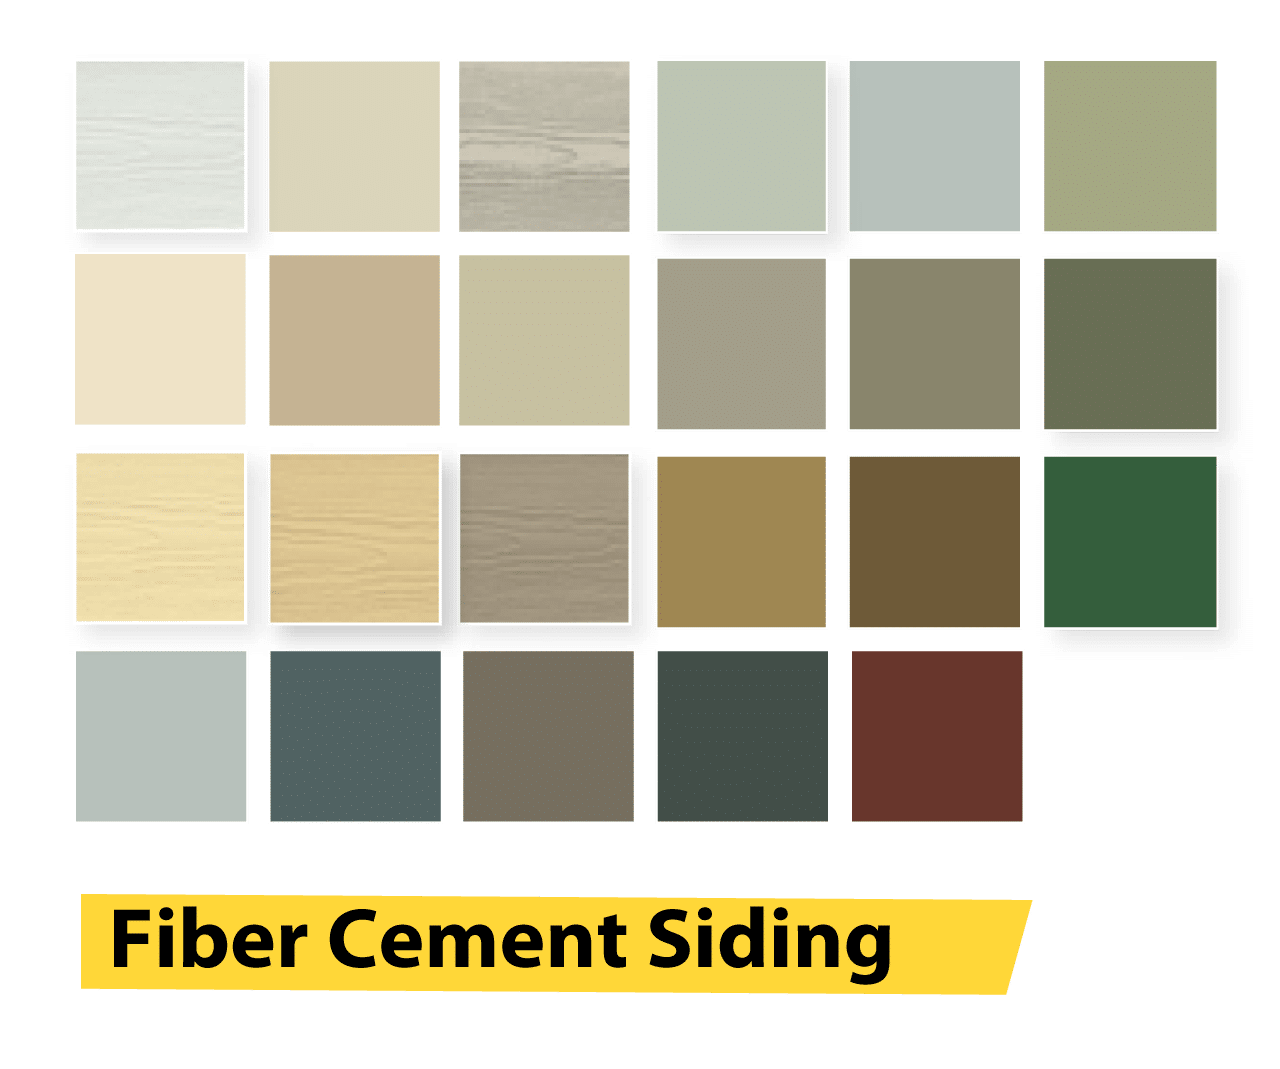 fiber cement siding installer in Maryland, Virginia, and Washington D.C.